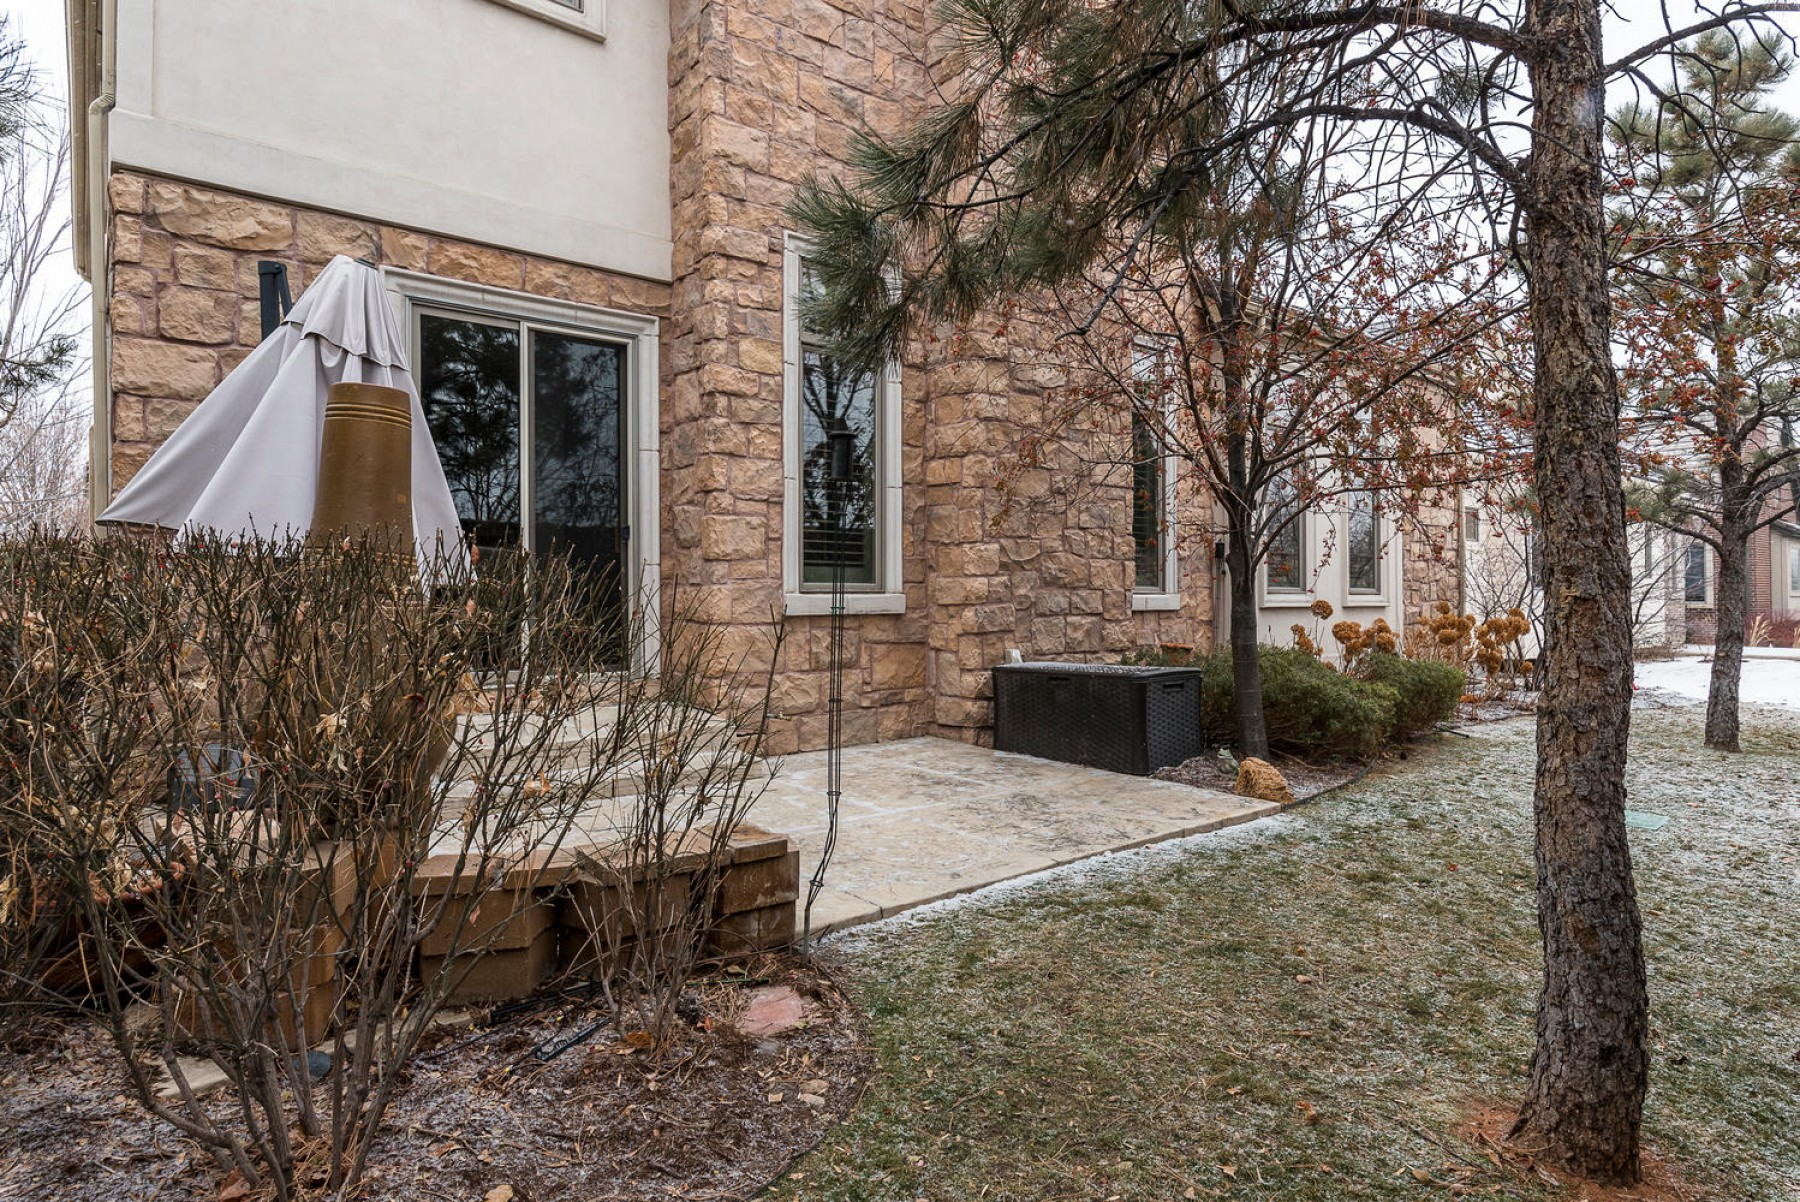 8735 E. Iliff Drive, Denver, CO 80231